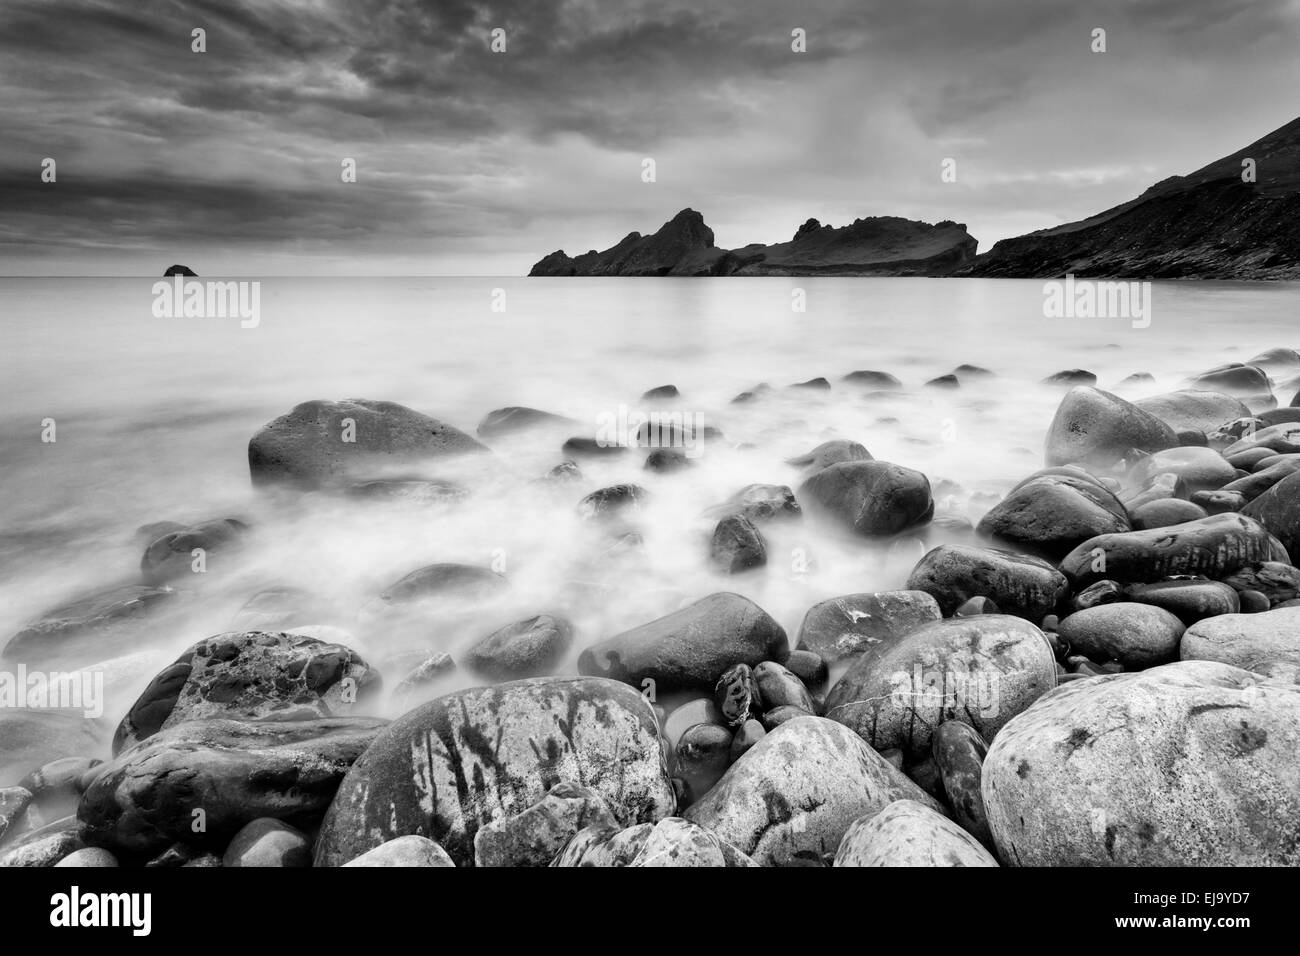 At low tide beautiful boulders are visible in Village Bay, St Kilda Scotland - Stock Image